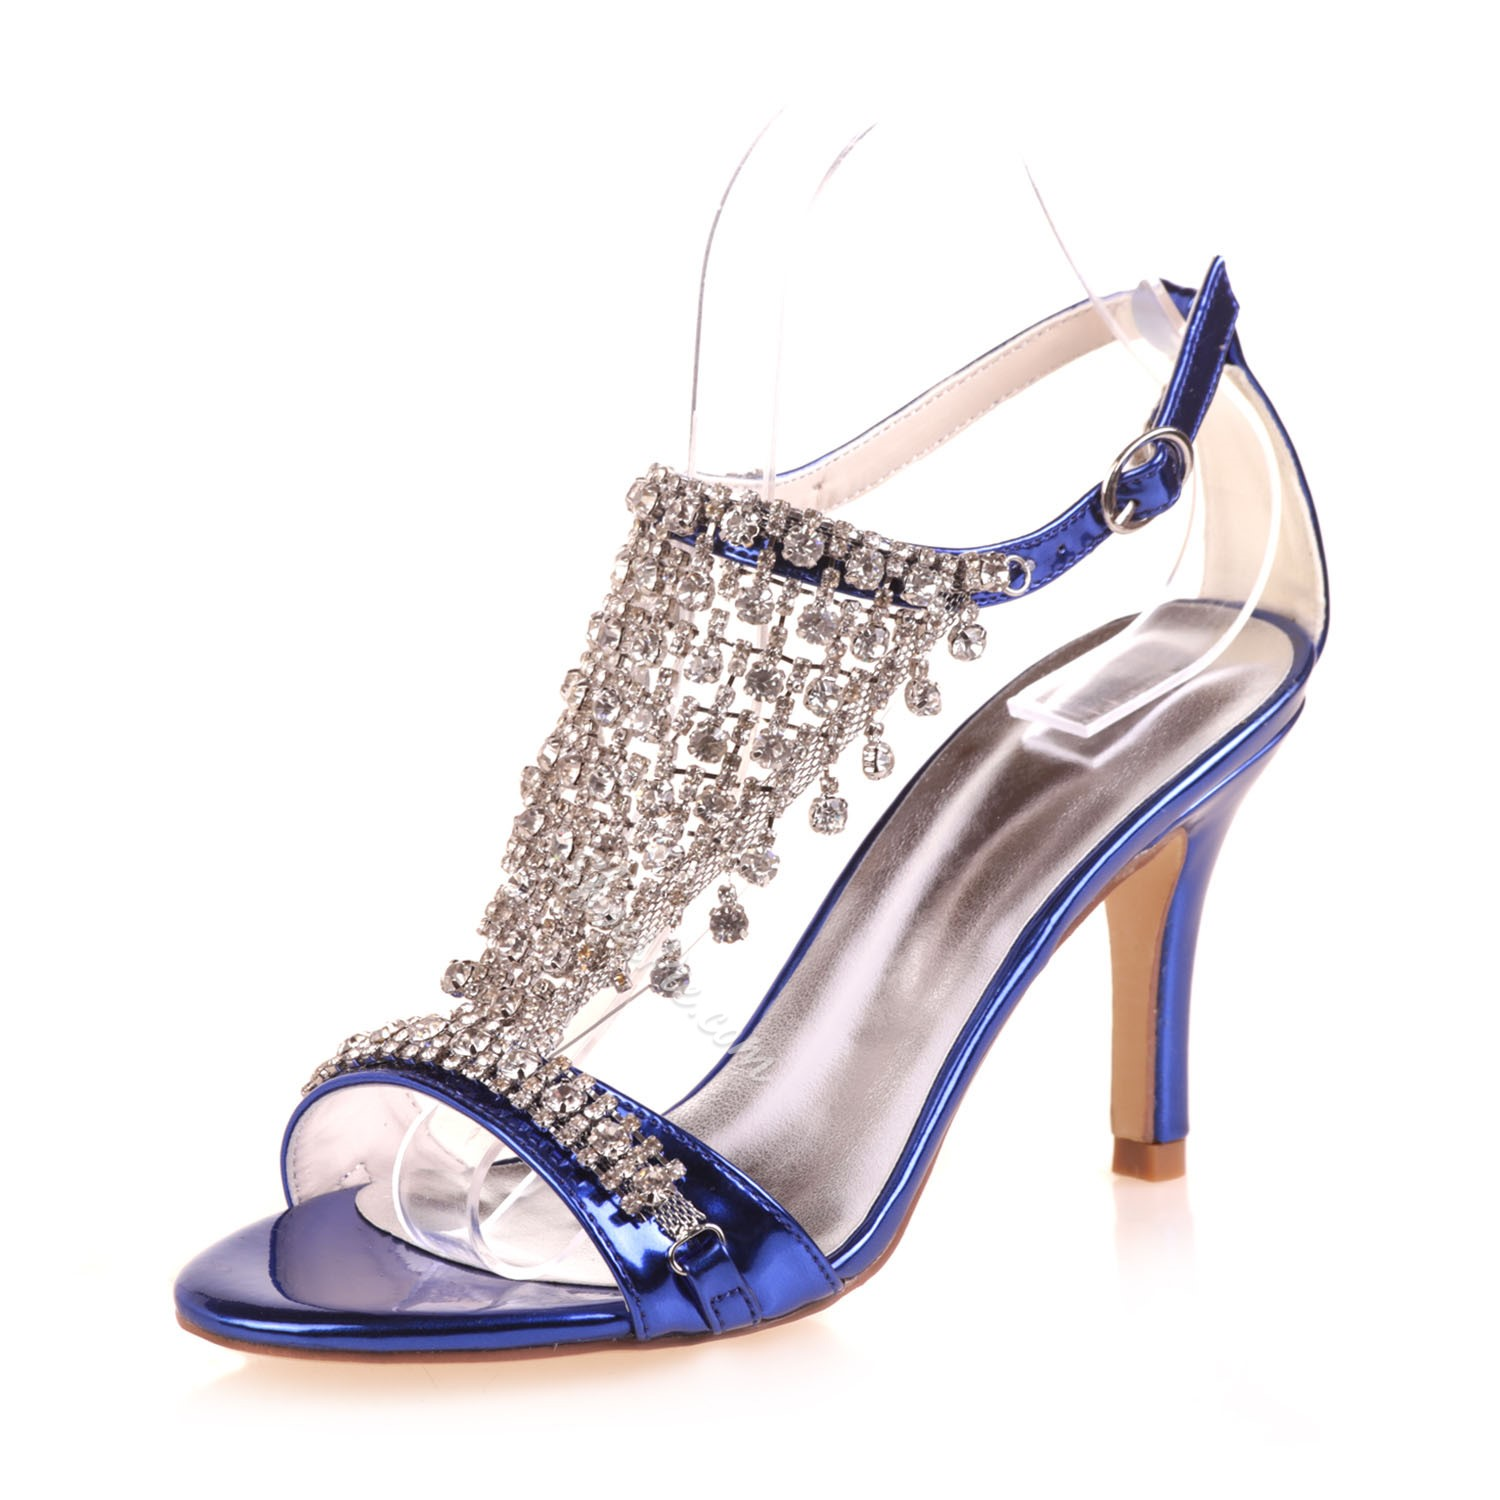 Shoespie Rhinestone Patent Leather Dress Sandals